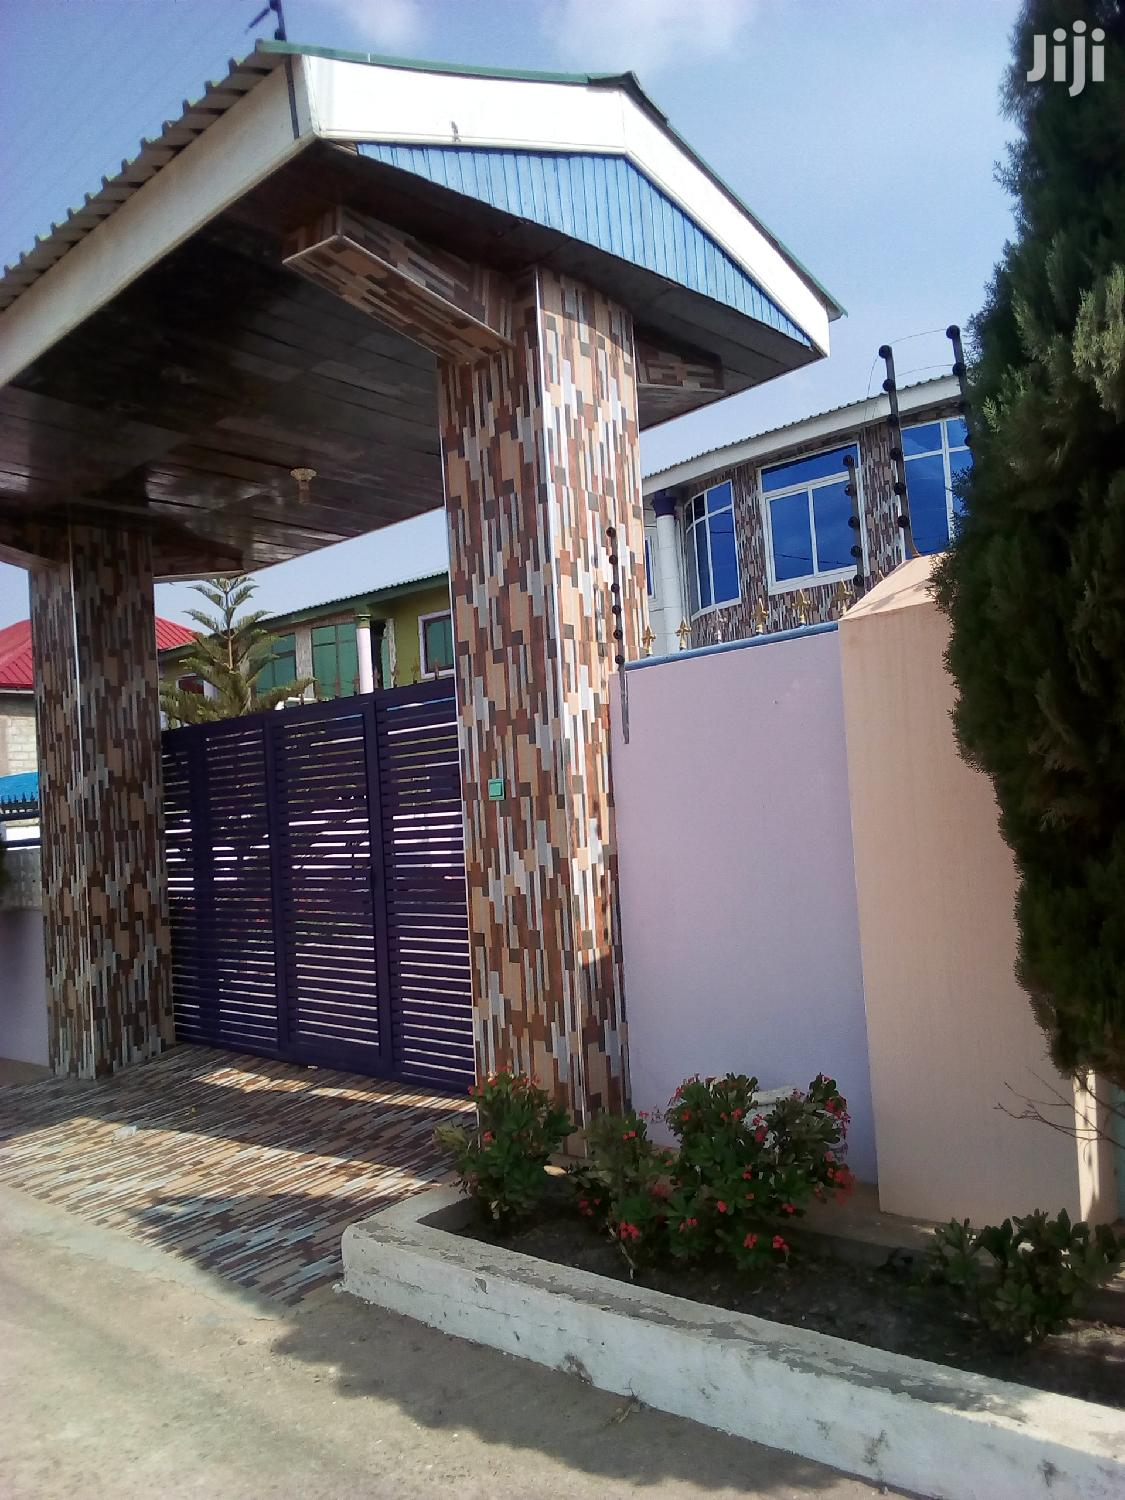 Newly Built 3bedroom Penthouse Selfcontain For Sale At Oyibi | Houses & Apartments For Sale for sale in Adenta Municipal, Greater Accra, Ghana